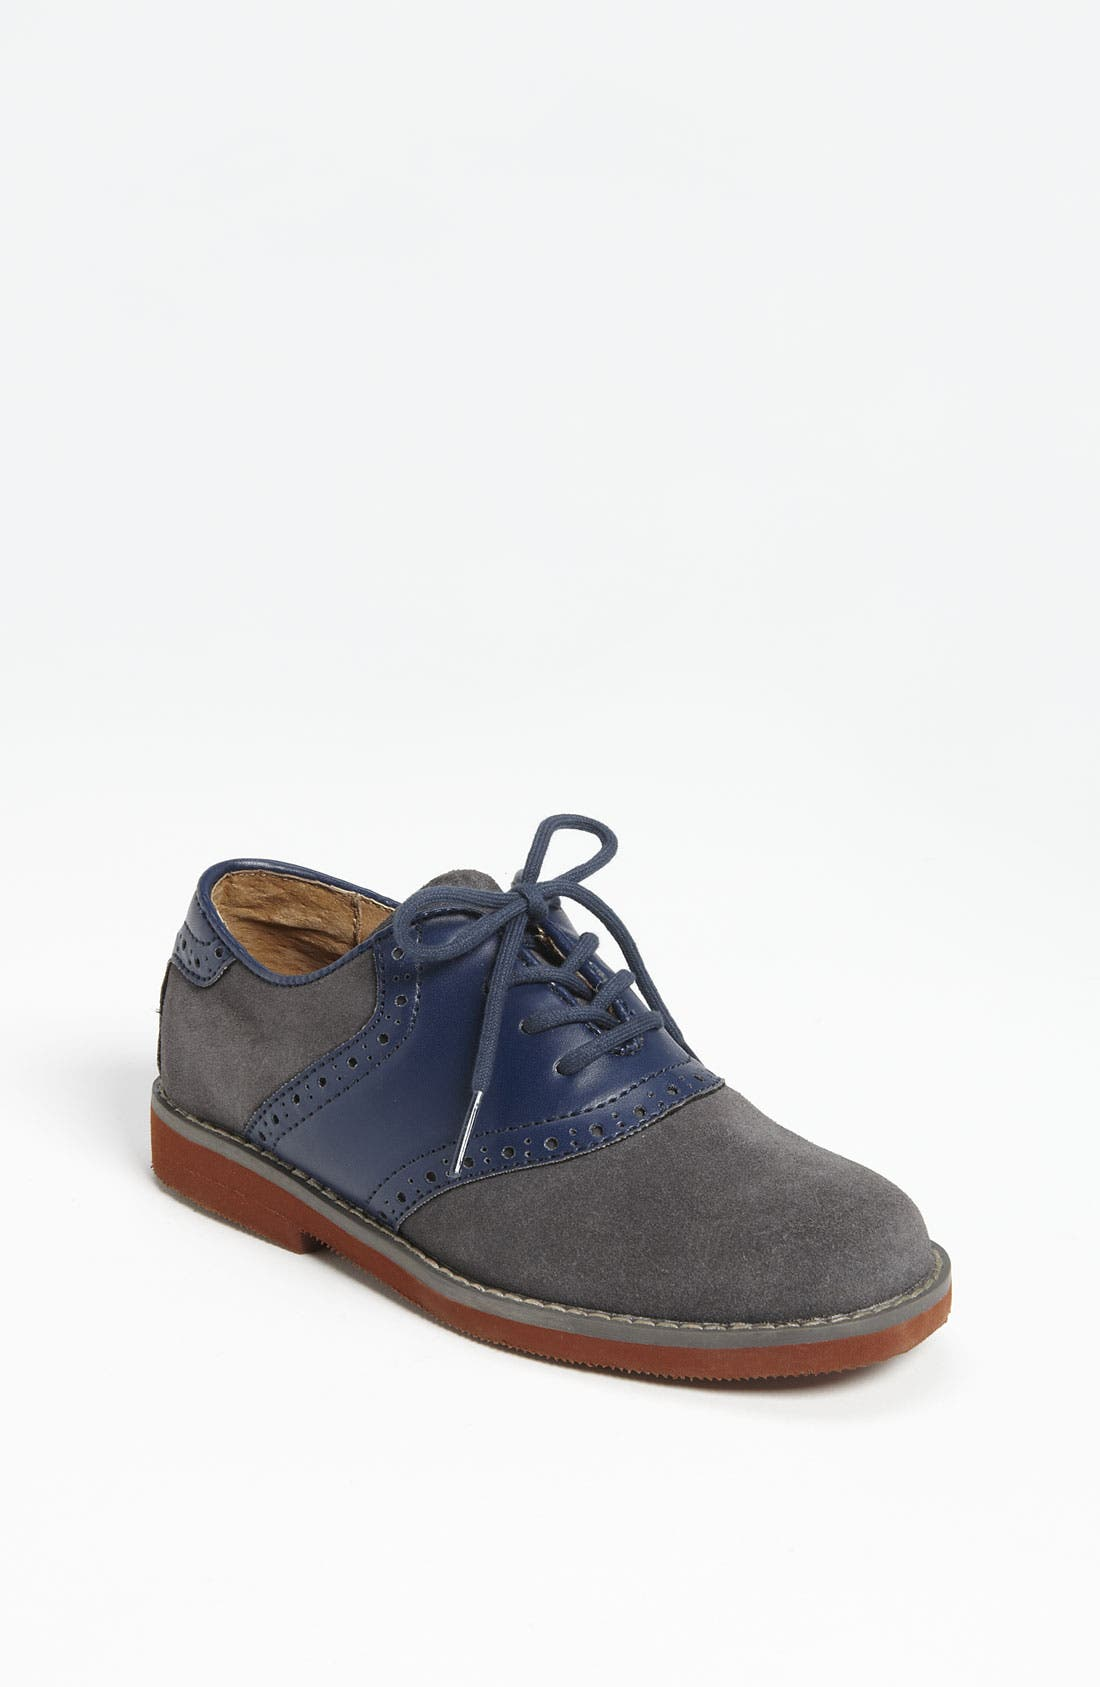 Alternate Image 1 Selected - Florsheim 'Kennett' Oxford (Toddler, Little Kid & Big Kid)